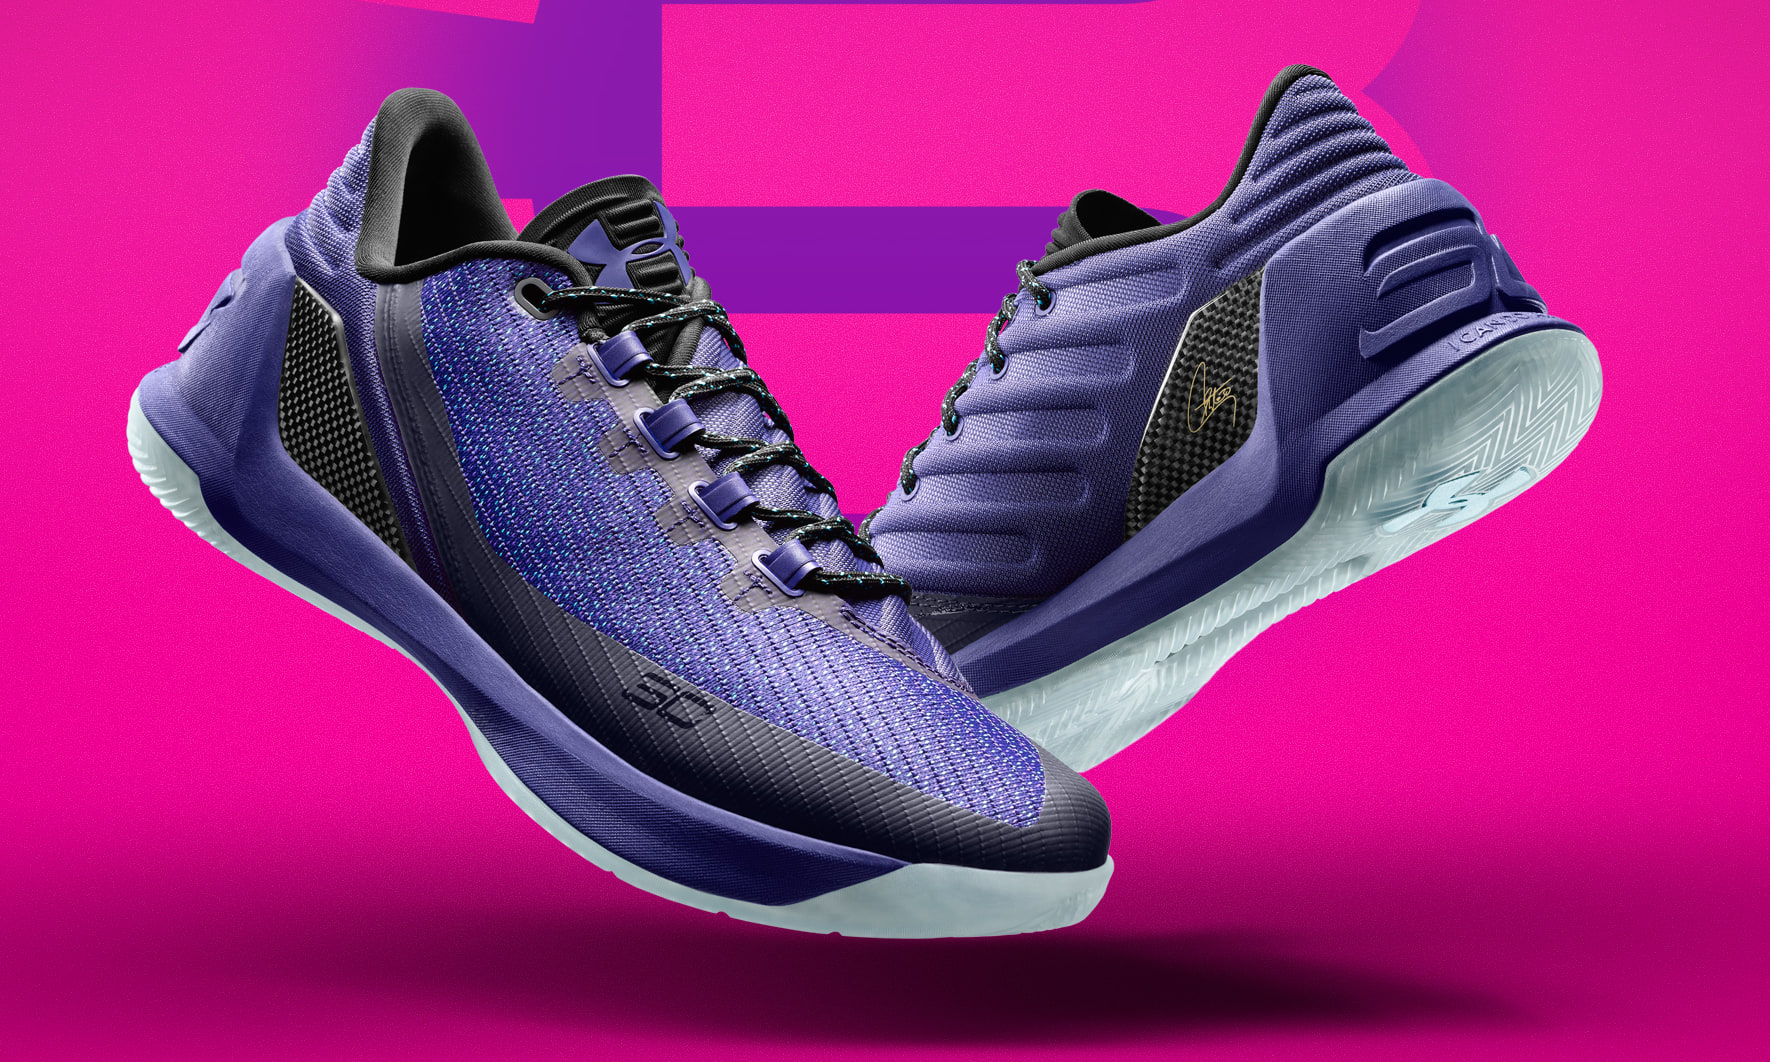 53ef4d21c8d5 ... promo code image via under armour under armour curry 3 low 658e0 c69d4